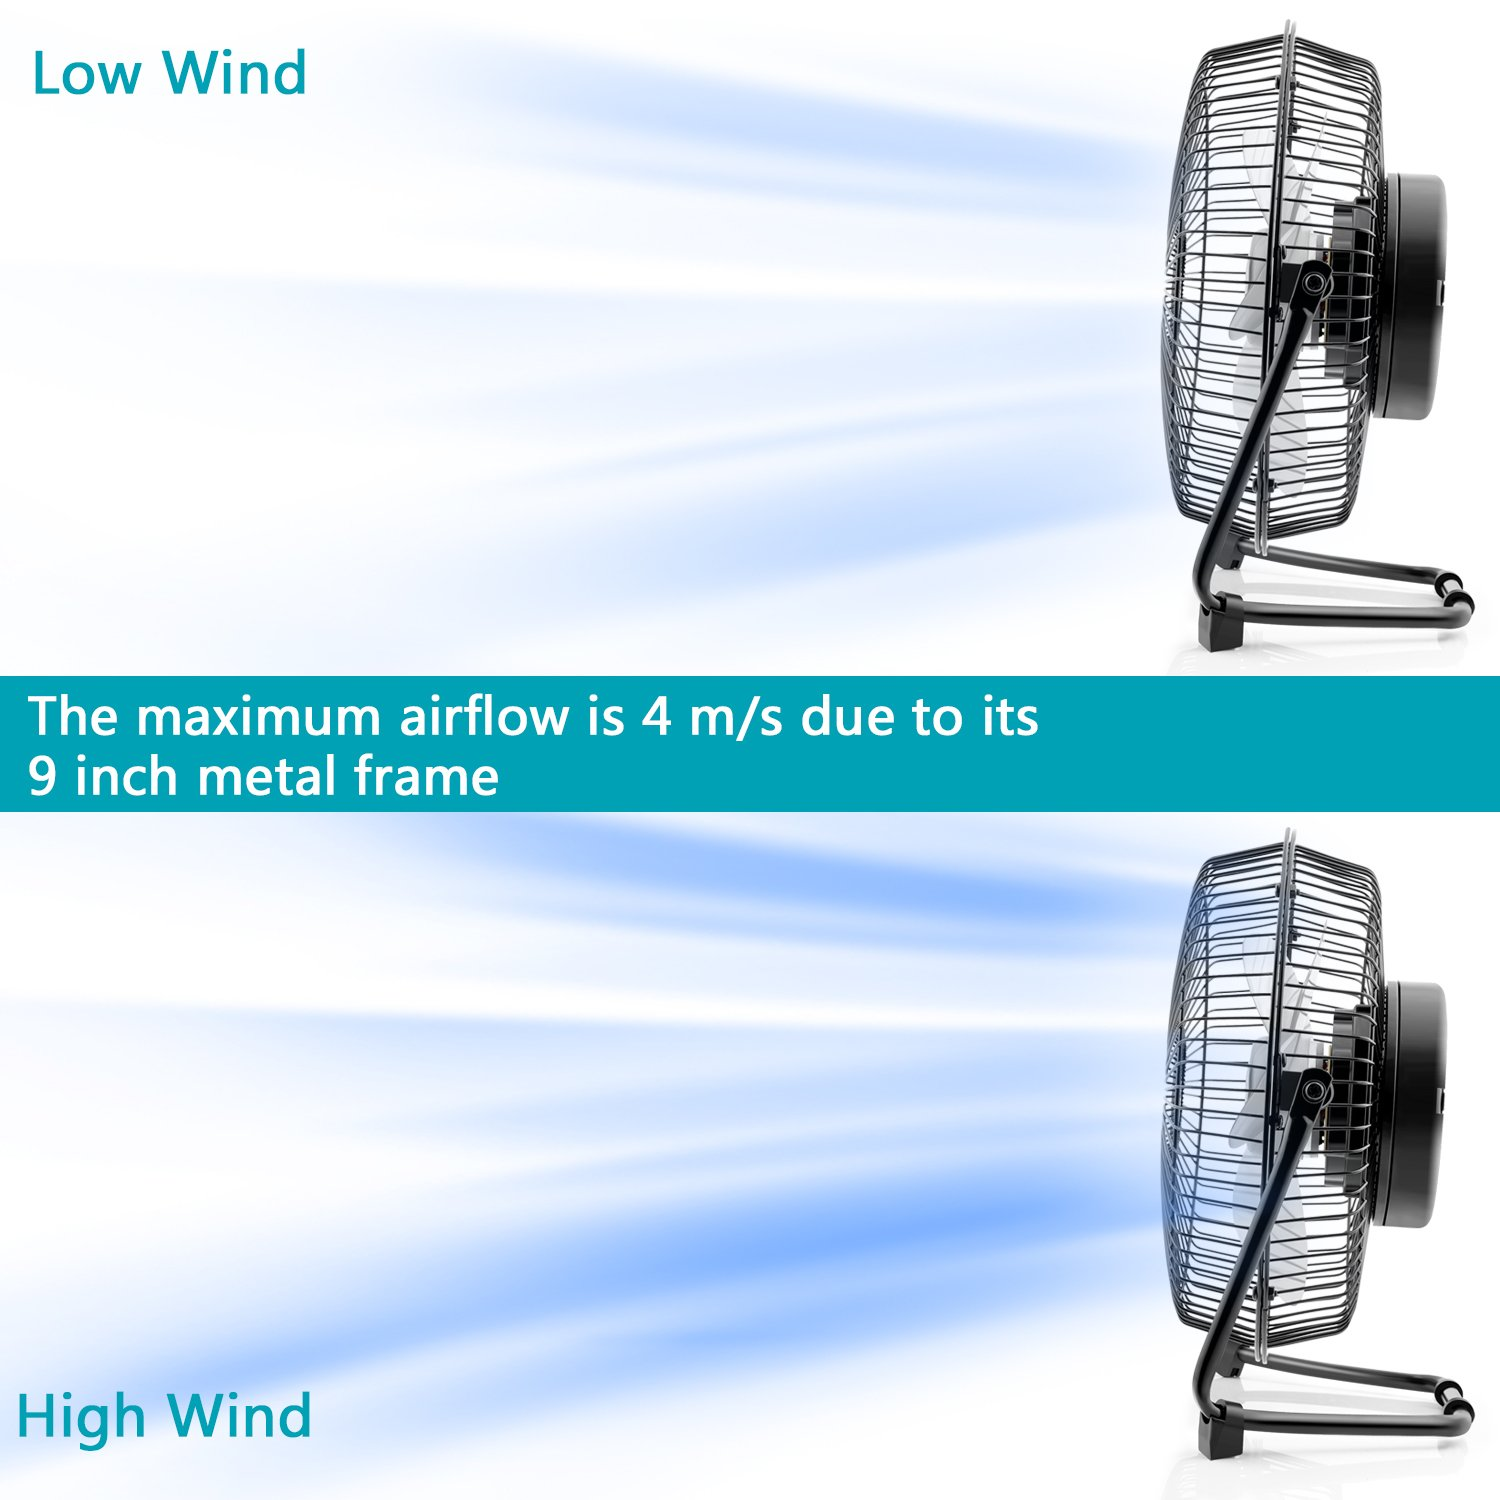 OPOLAR 9 inch USB Rechargeable Desk Fan with 6700mAh Capacity, Long Working Time, Good Airflow,Whisper Quiet, Two Settings, Personal Cooling Fan for Home & Office & Hurricane & Camping by OPOLAR (Image #5)